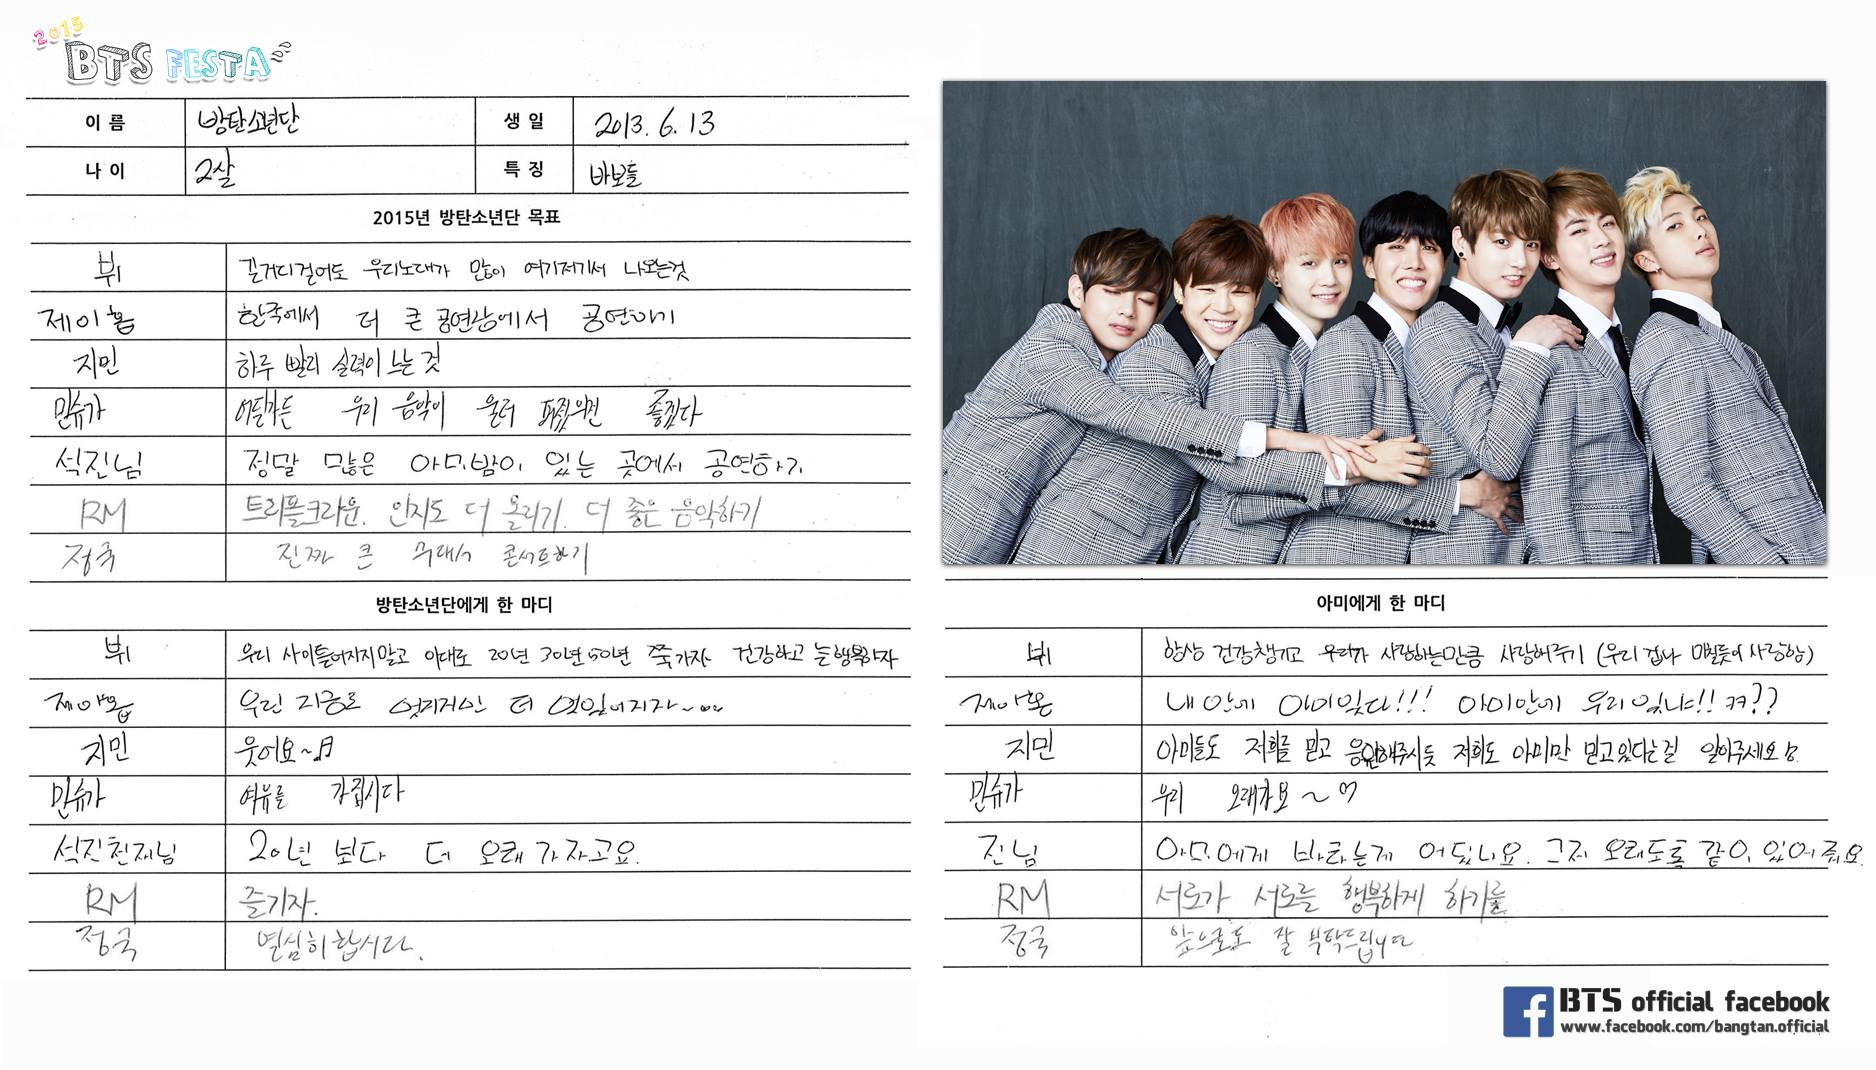 BTS Festa 2015 Goals and Messages